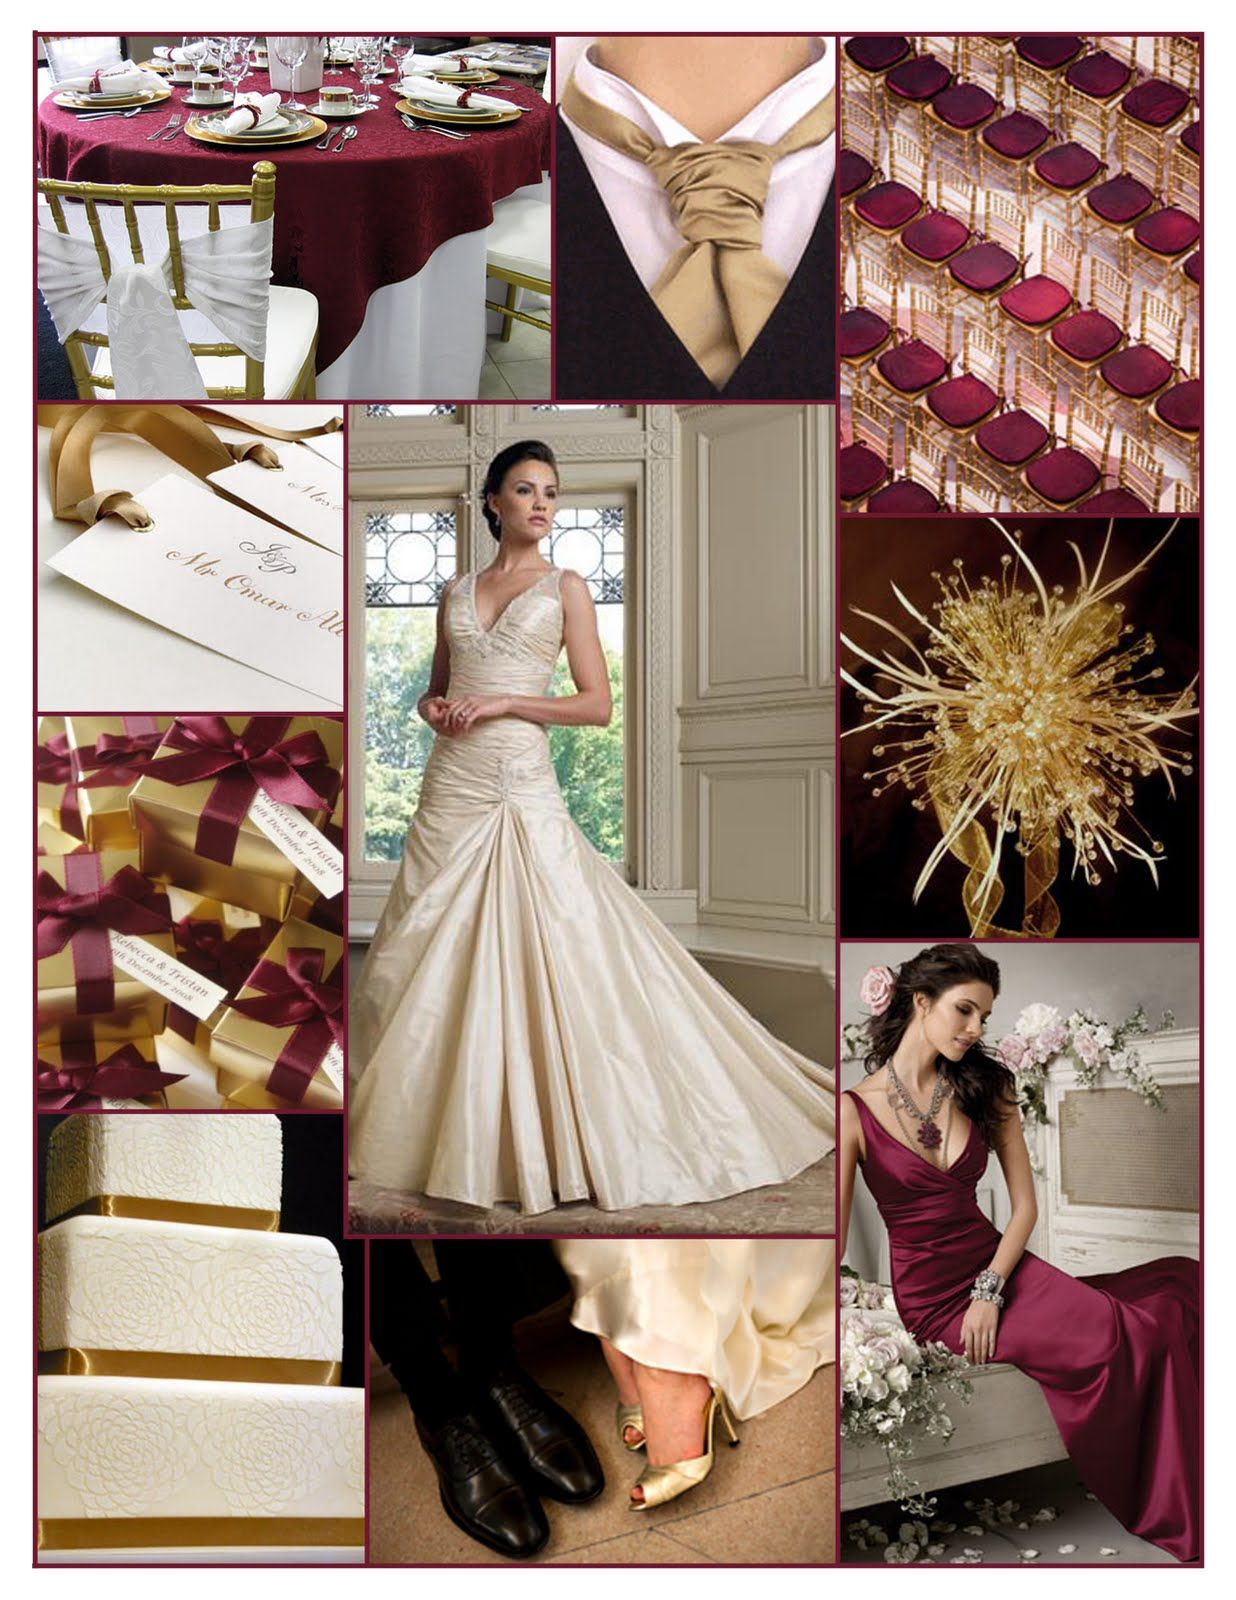 Cranberry champagne wedding - Wedding Planners